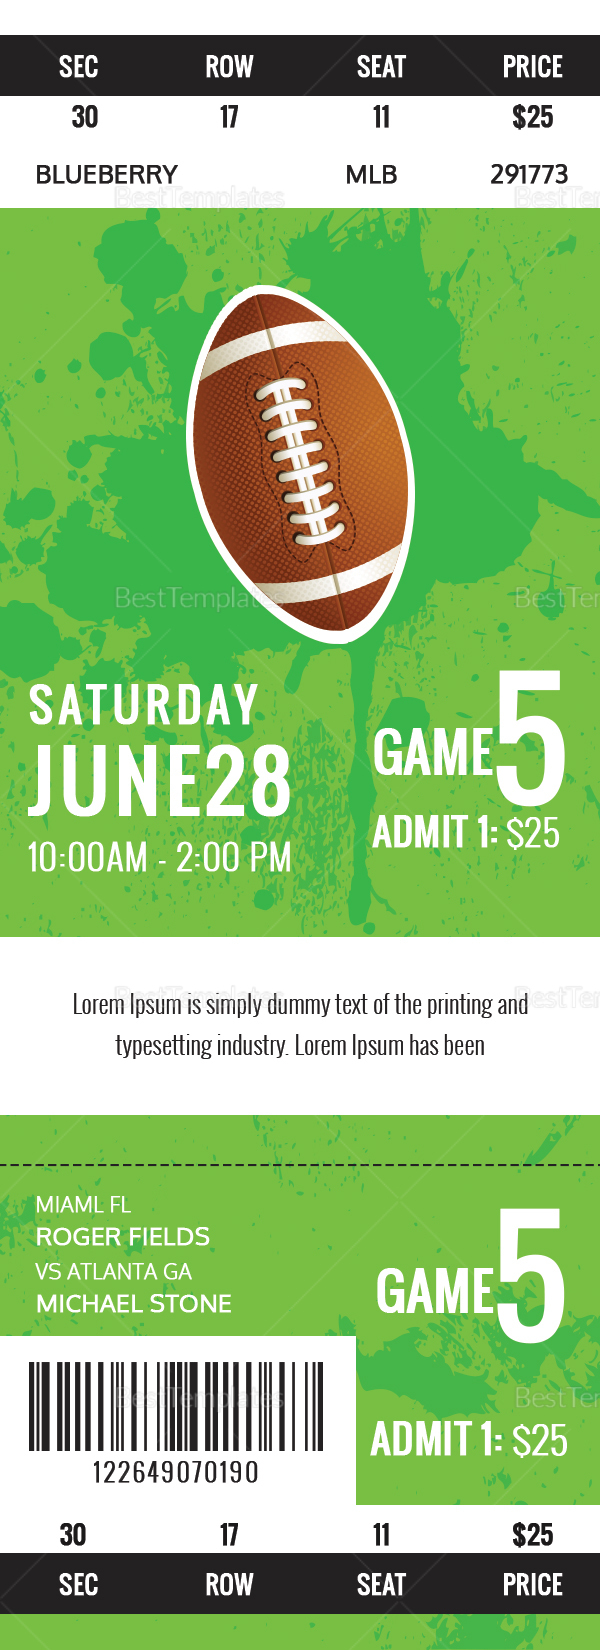 Rugby Game Ticket Design Template